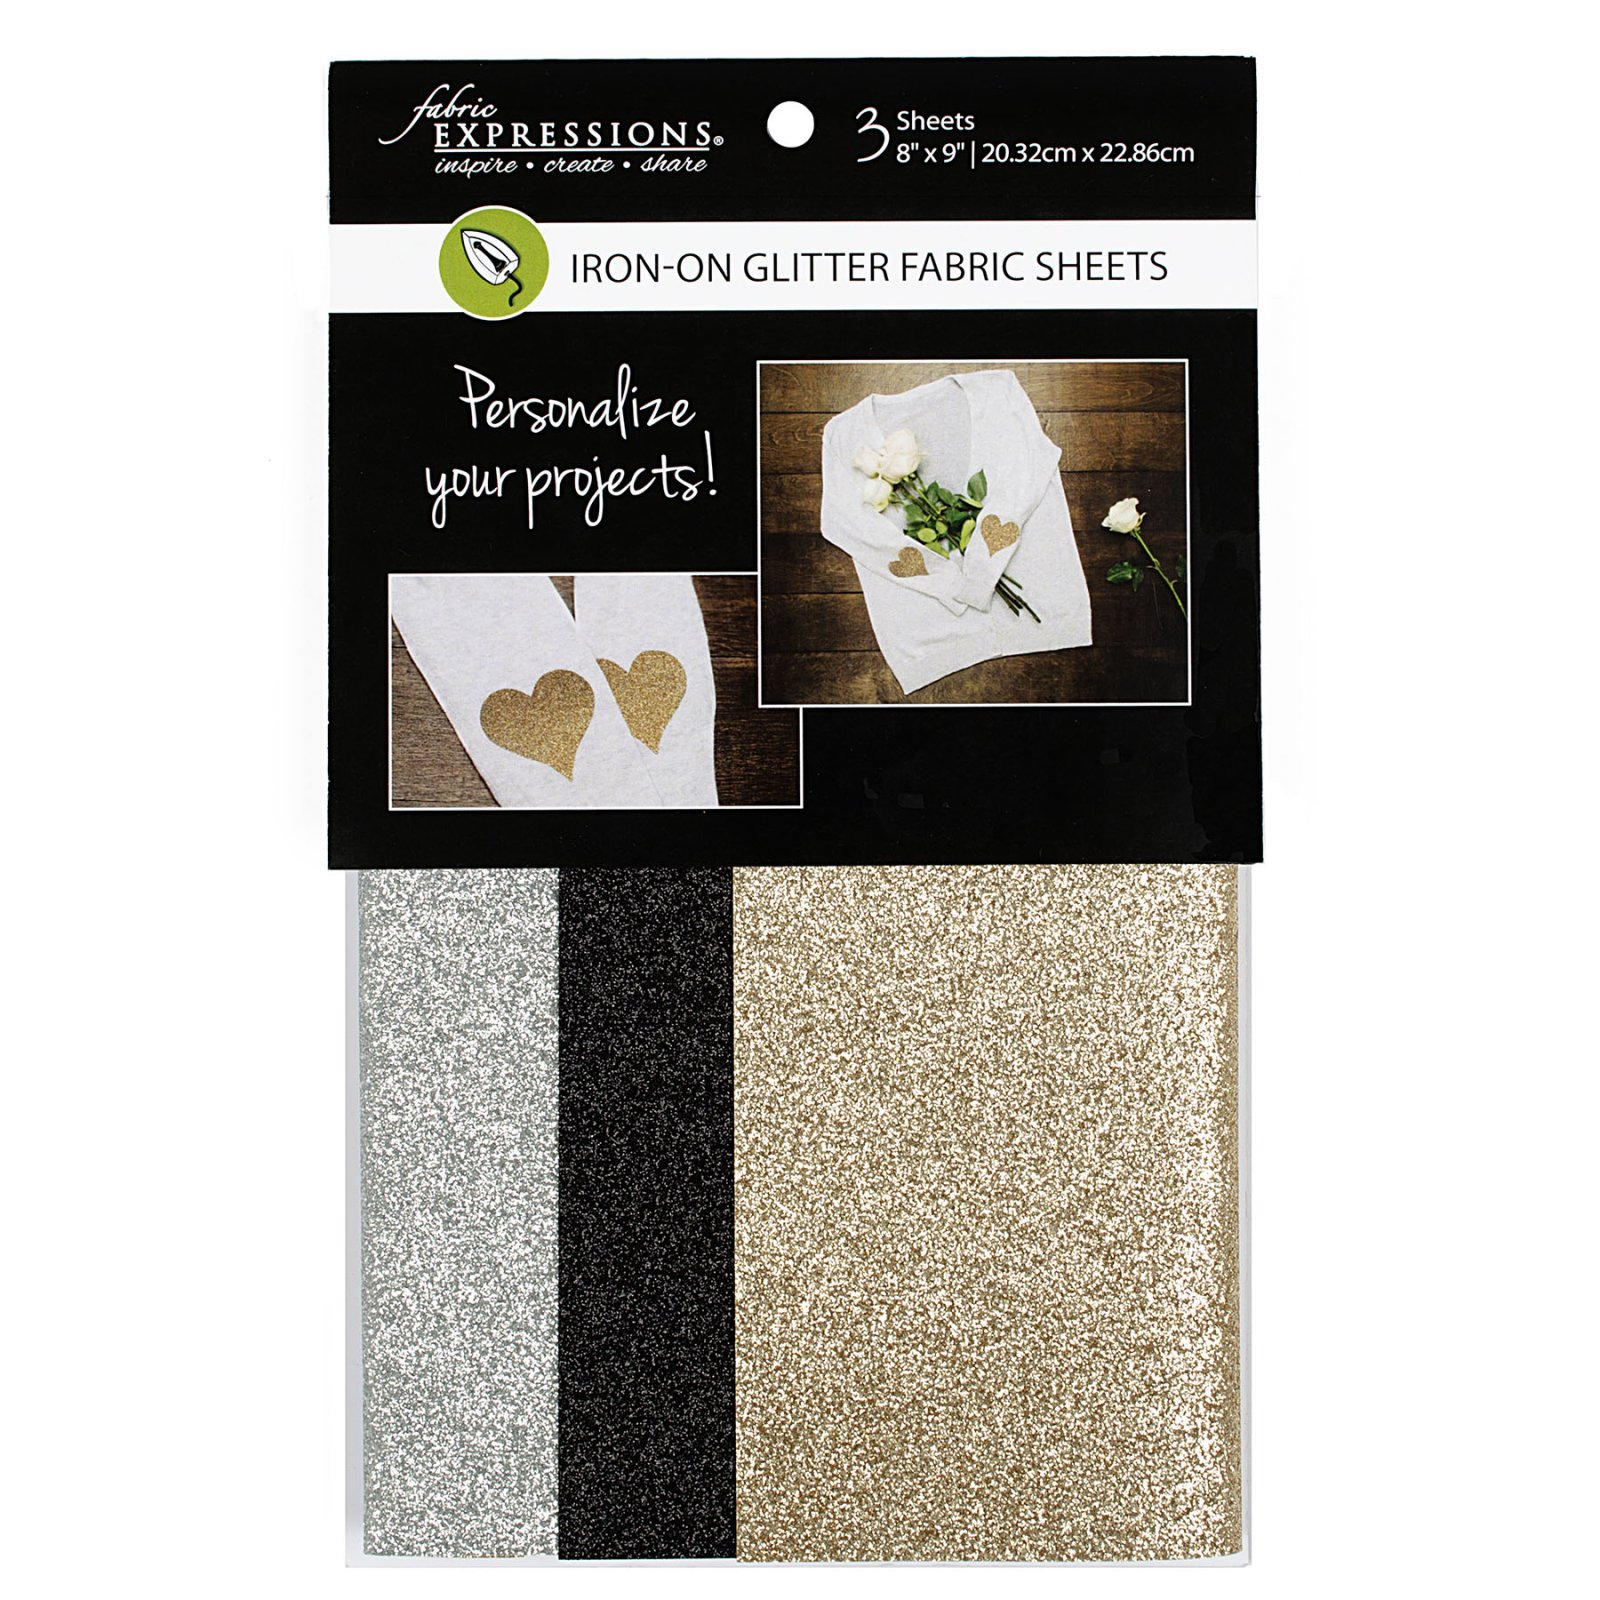 Fabric Expressions<br>Iron-on Glitter Sheets<br>FE-FS-SP2-GLT3PC